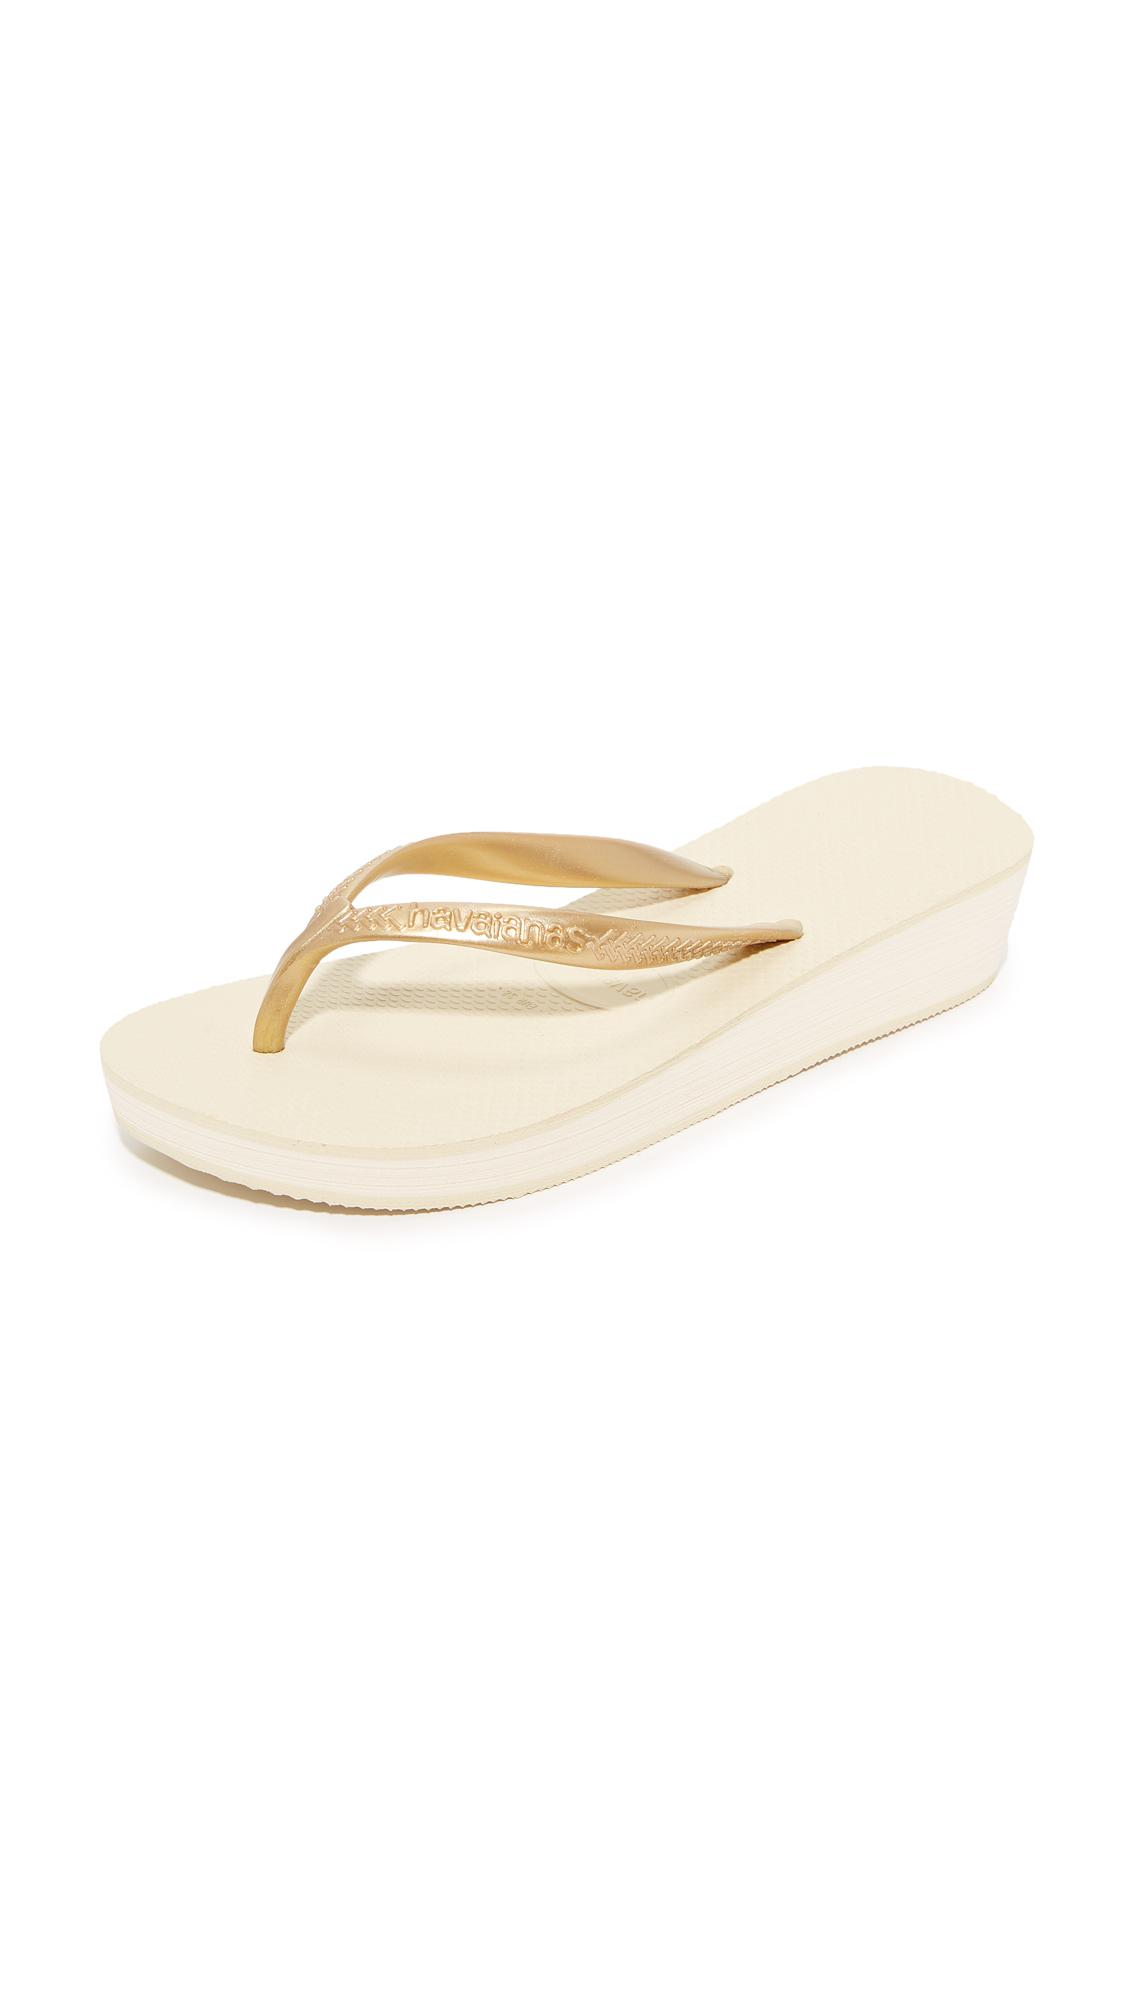 Havaianas High Light Wedge Flip Flop In Natural  Lyst-7691